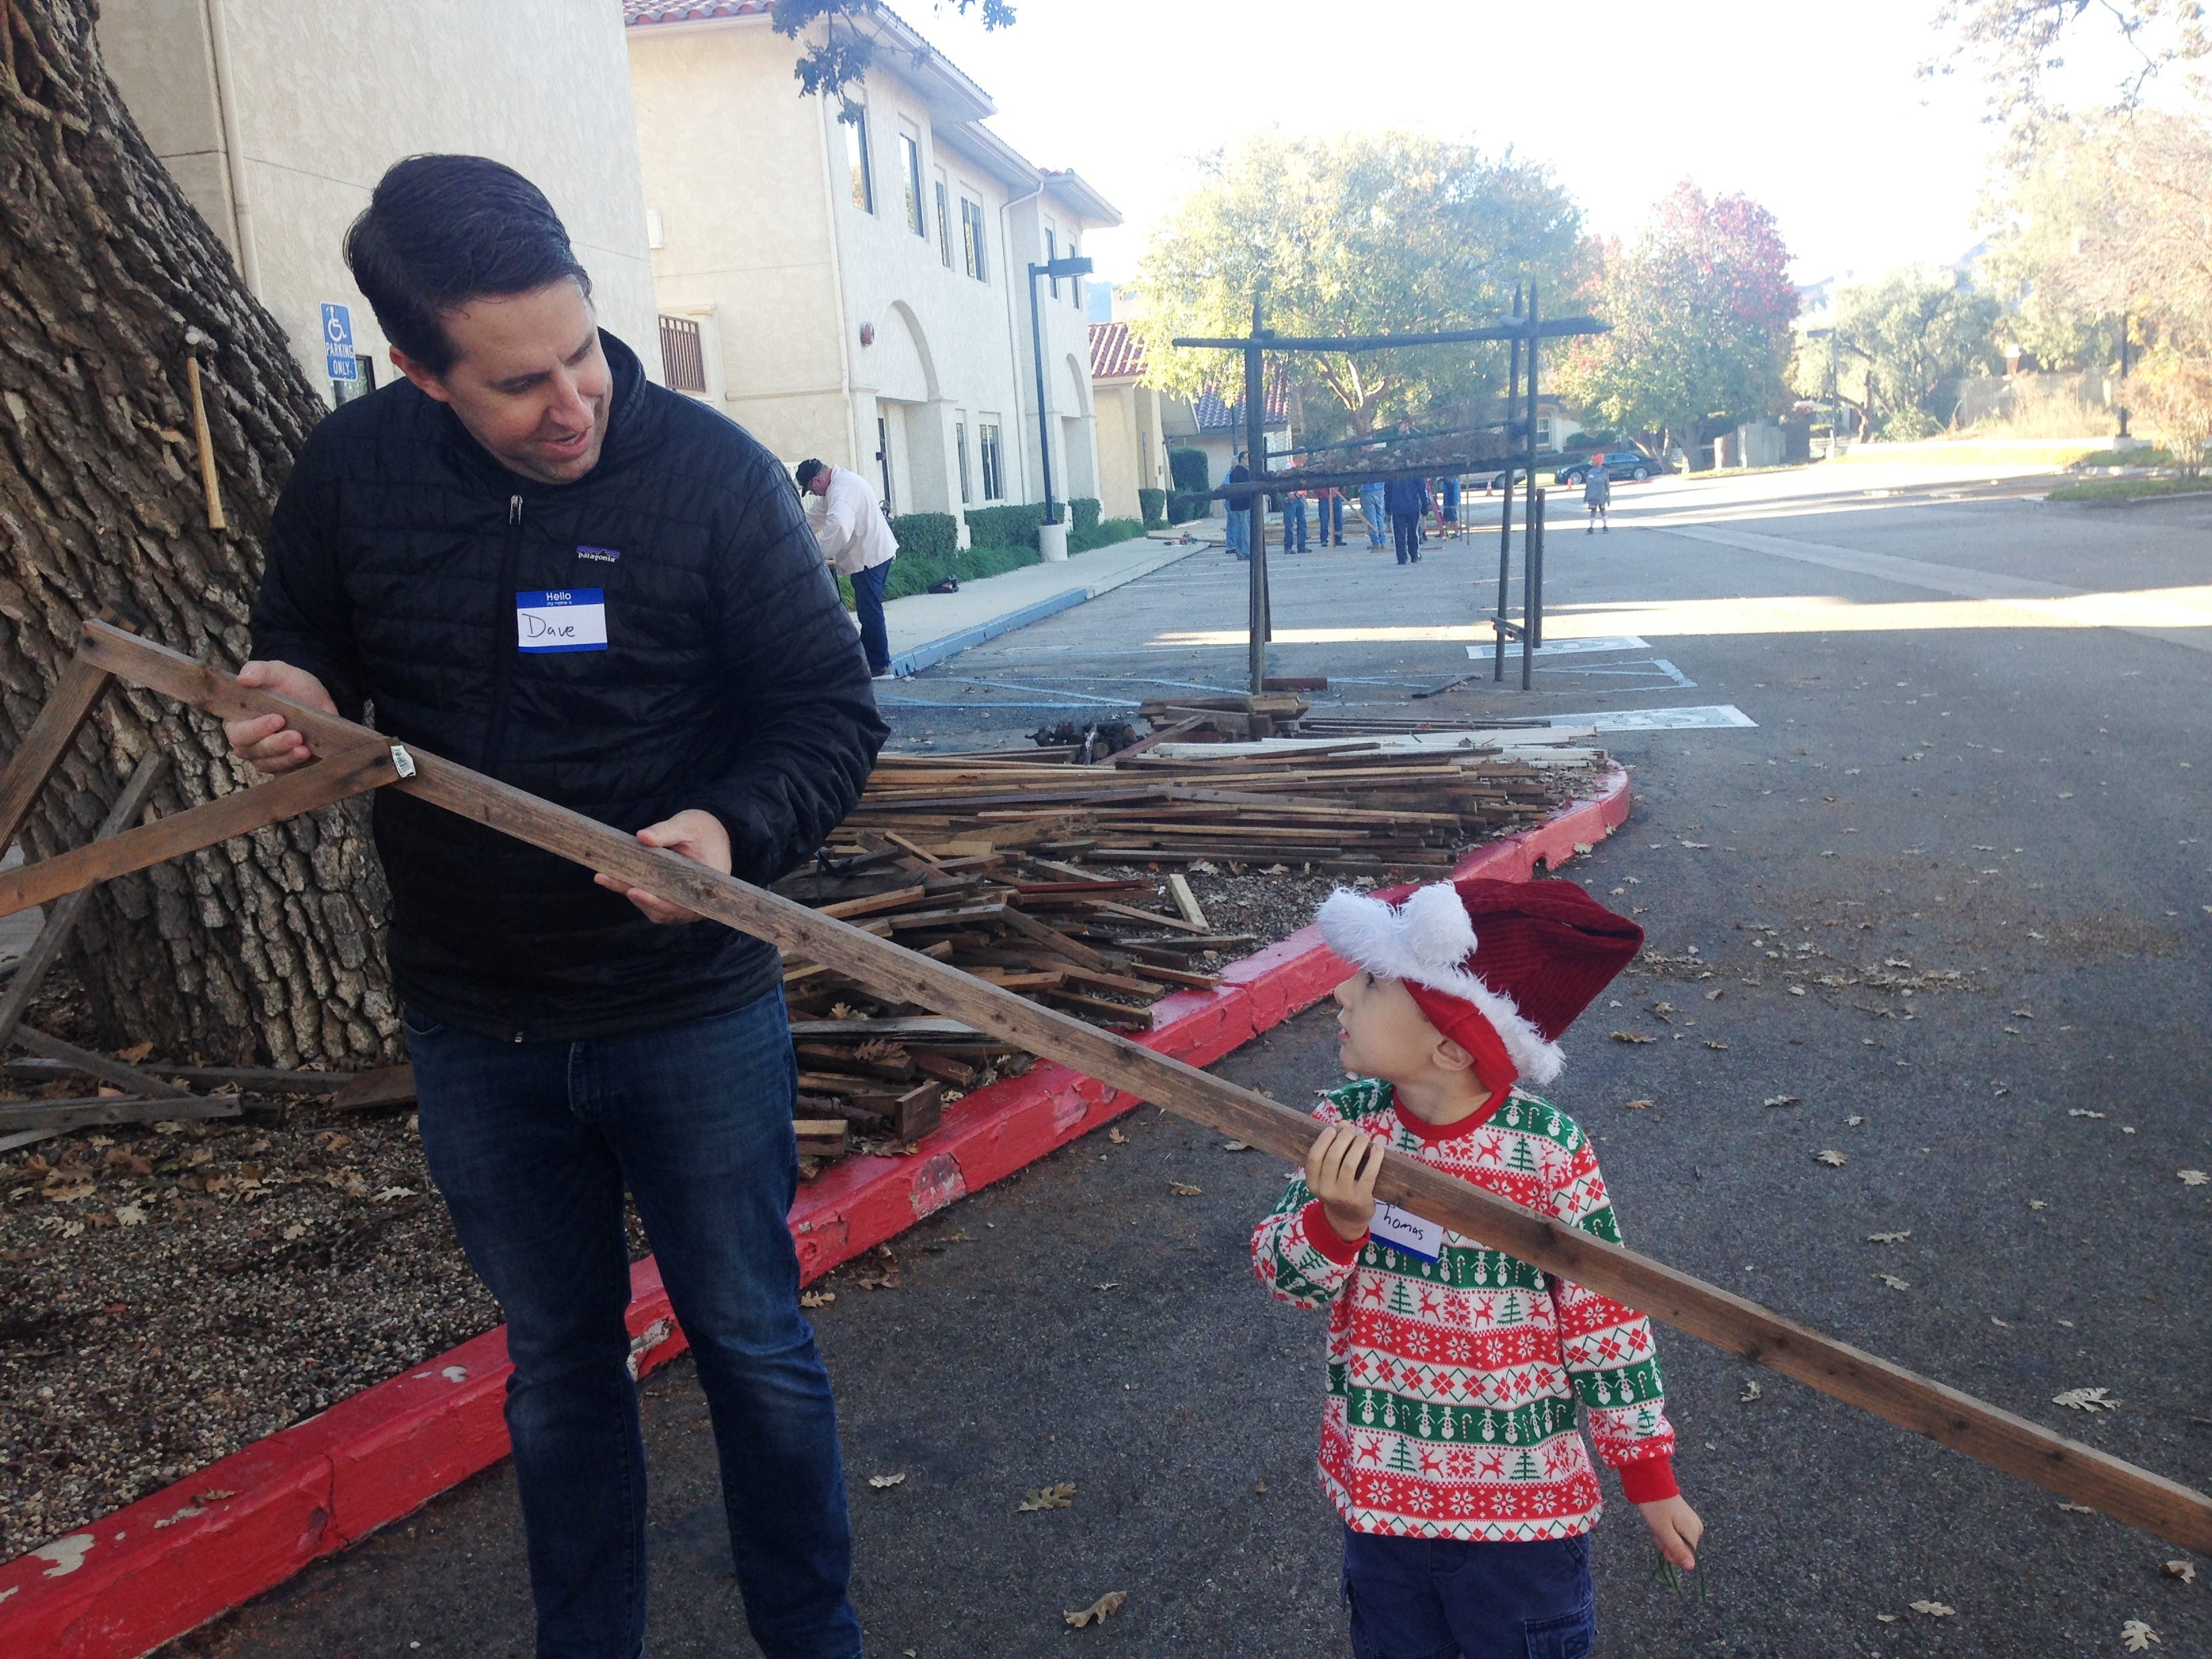 Dave Rohde, pastor at Westminster Presbyterian Church, and his 3-year-old son, Thomas, help build the Bethlehem Experience, a drive-through Nativity scene at Westminster Presbyterian Church in Westlake Village. This free event will take place from 5-9 p.m. Friday and Saturday.